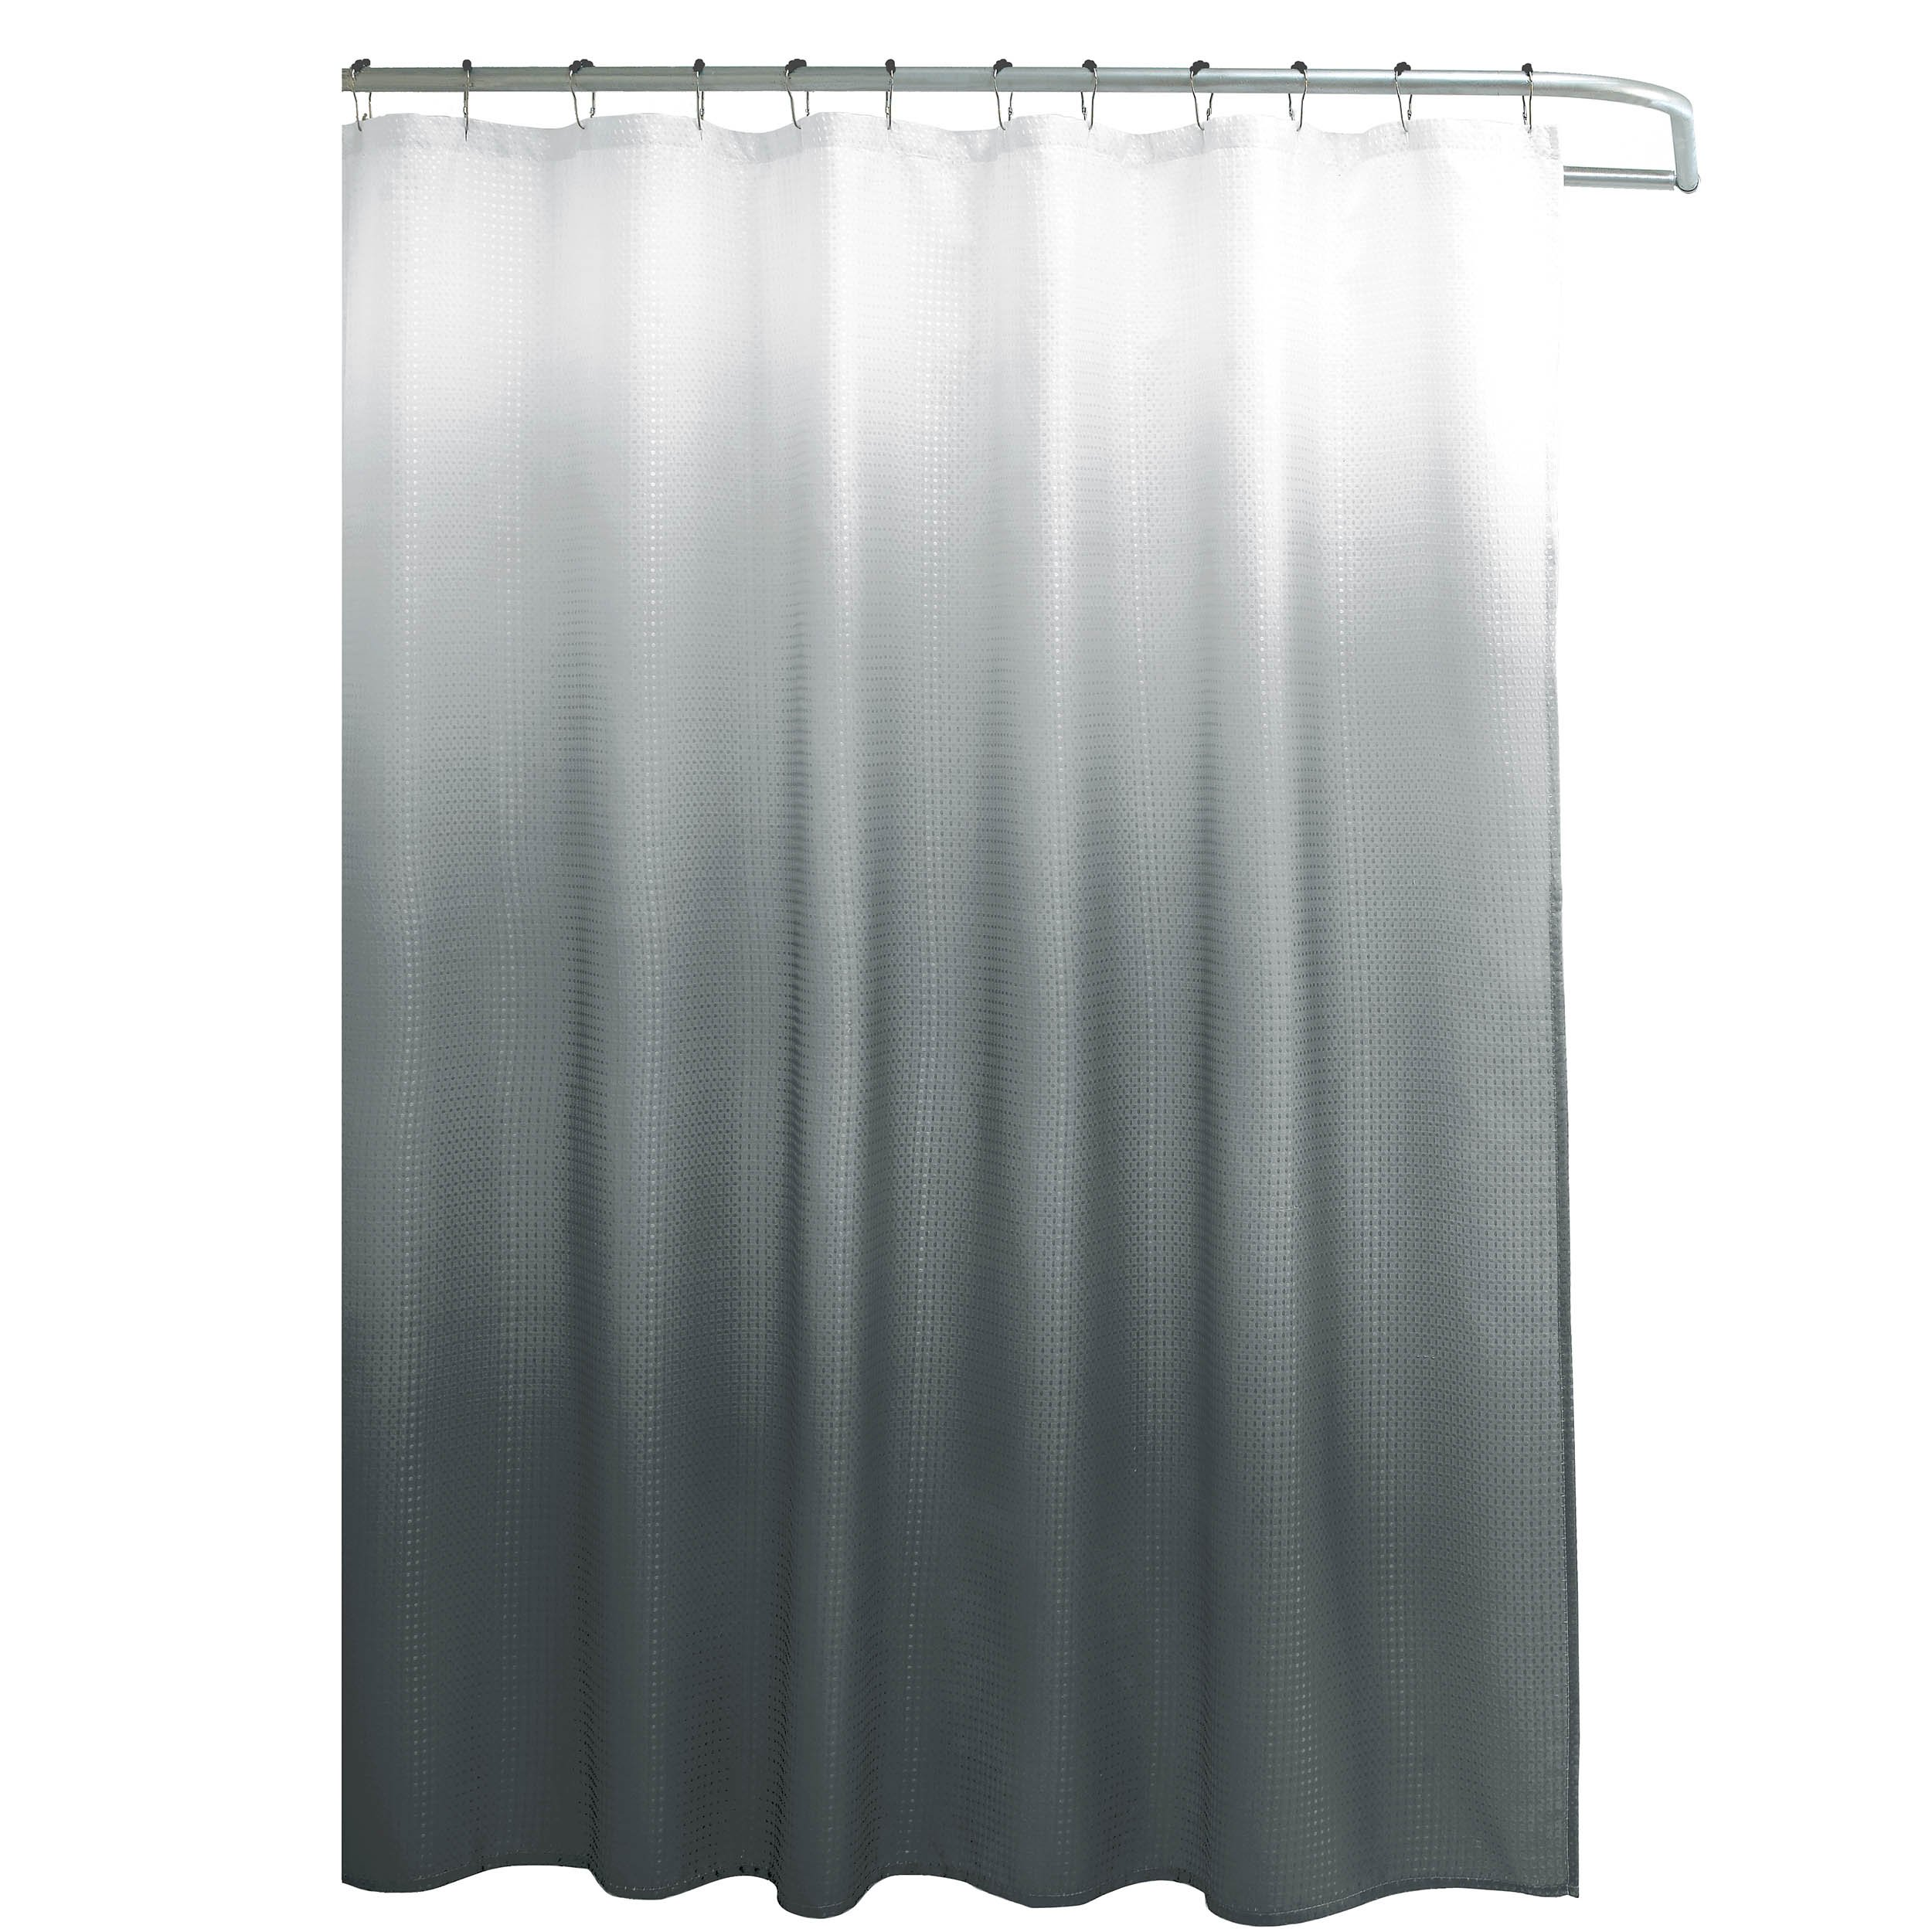 Natural Home Ombre Textured Shower Curtain With Beaded Rings Dark Grey